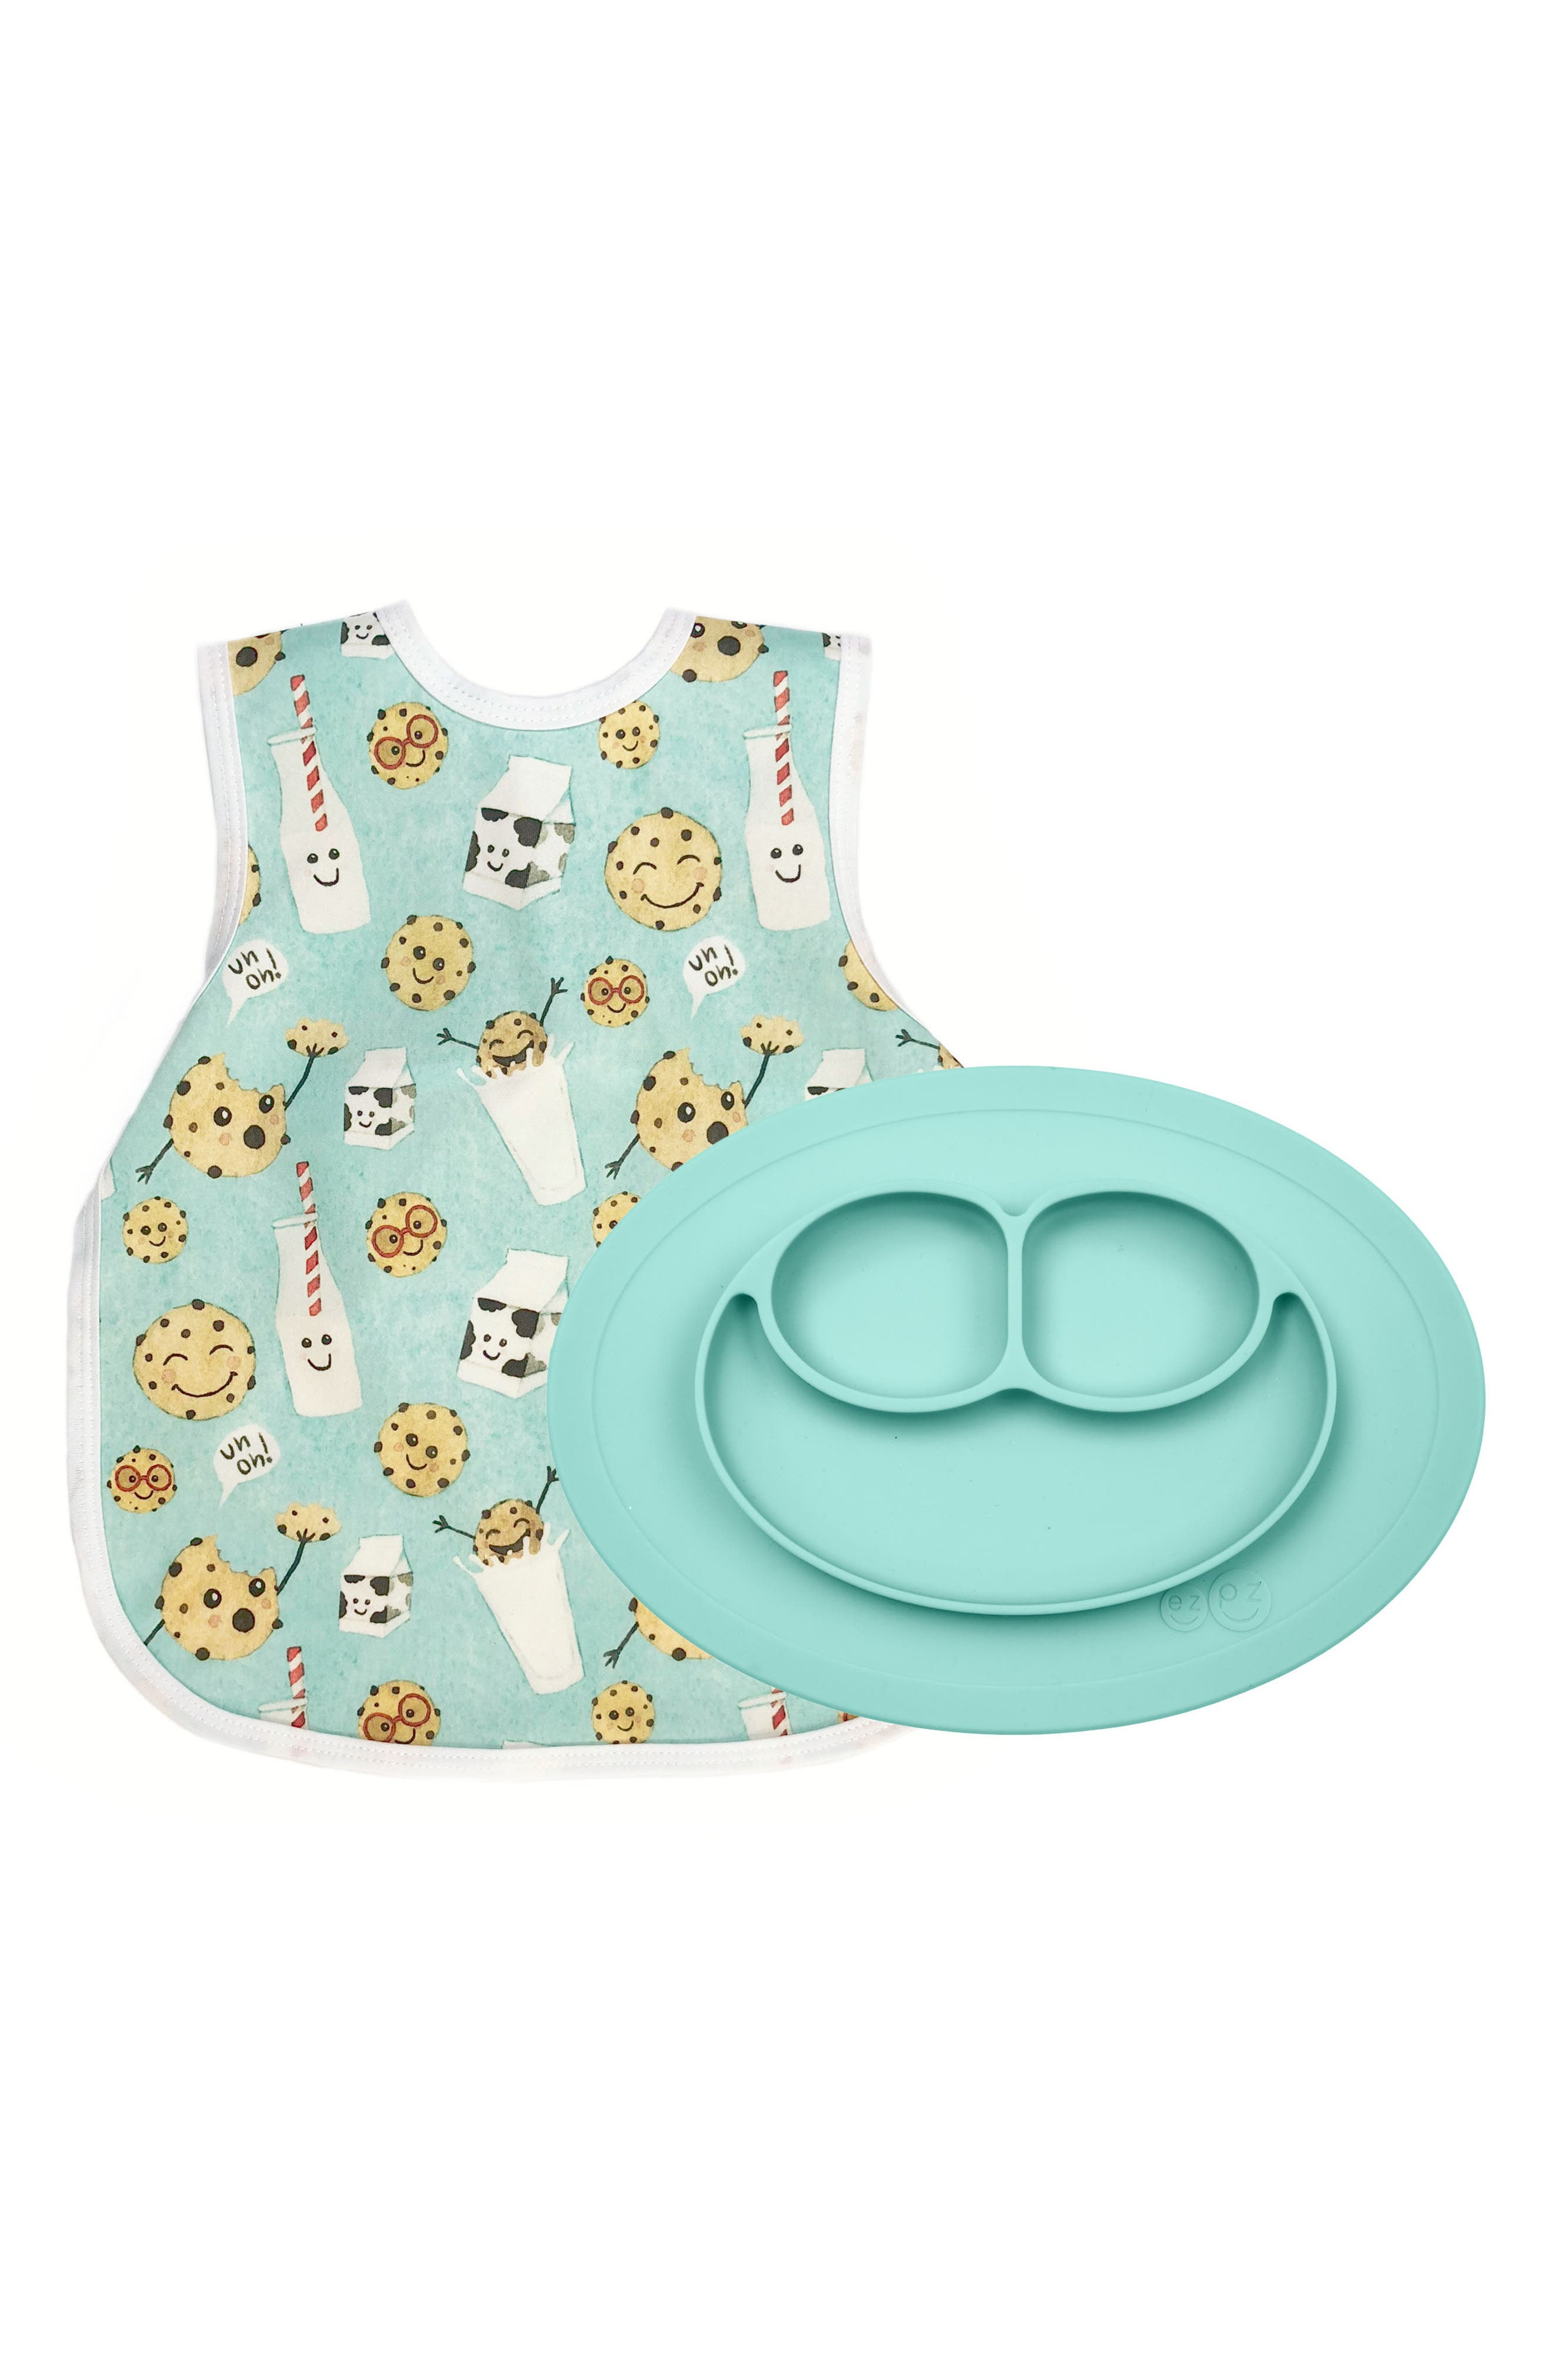 Cookies Bapron & Mini Silicone Feeding Mat,                         Main,                         color, AQUA